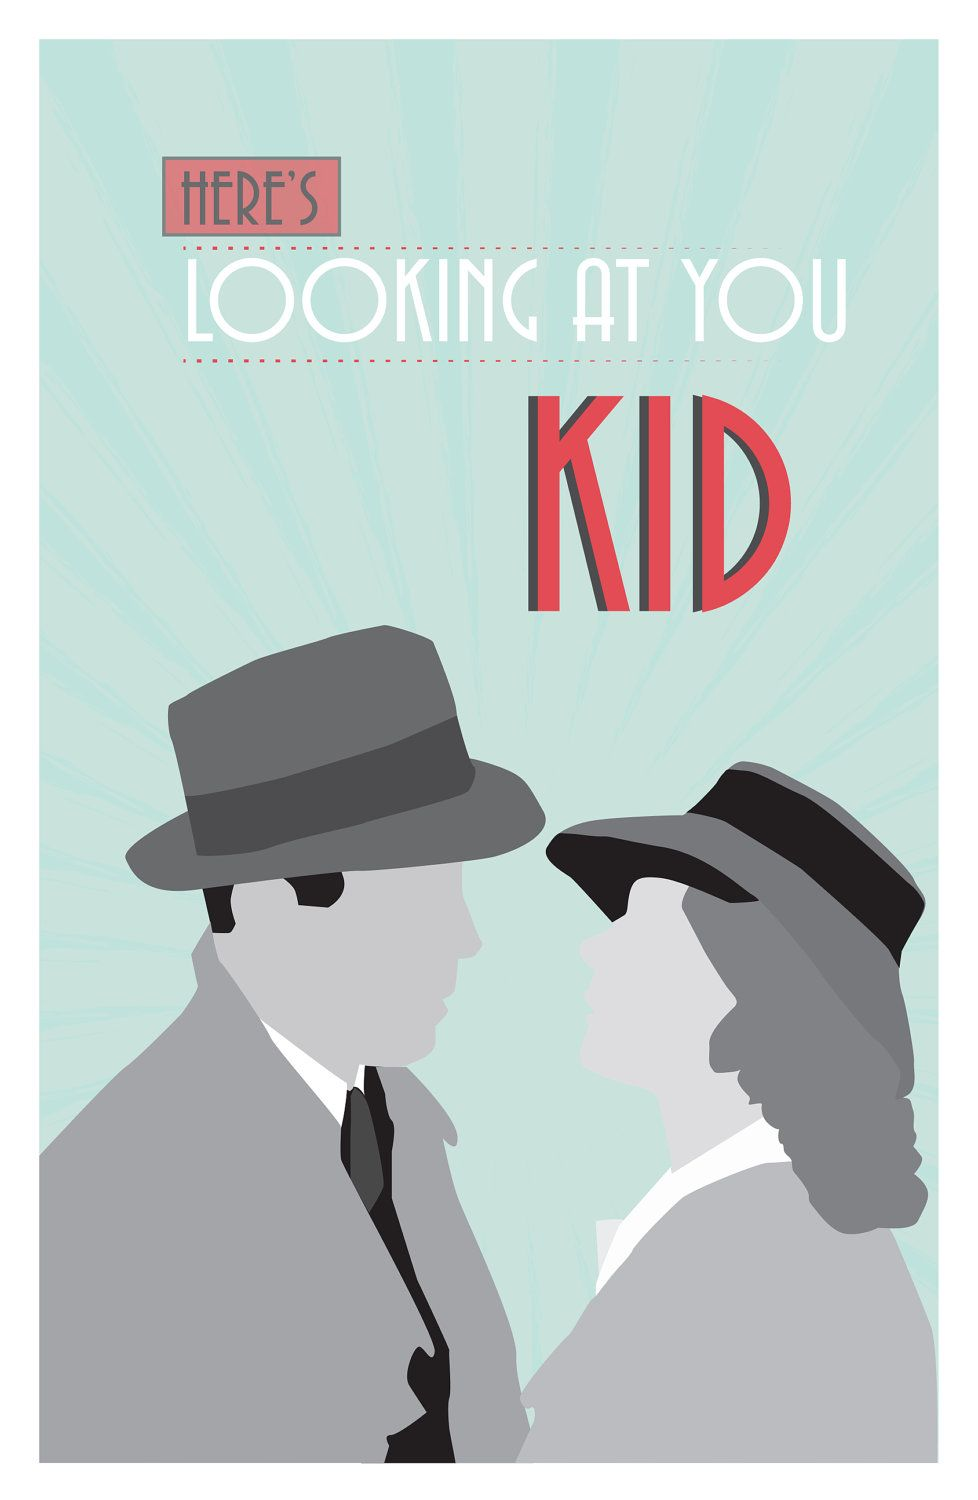 Graphic design poster quotes - Casablanca Poster Quote Poster Romantic Print Here S Looking At You Kid